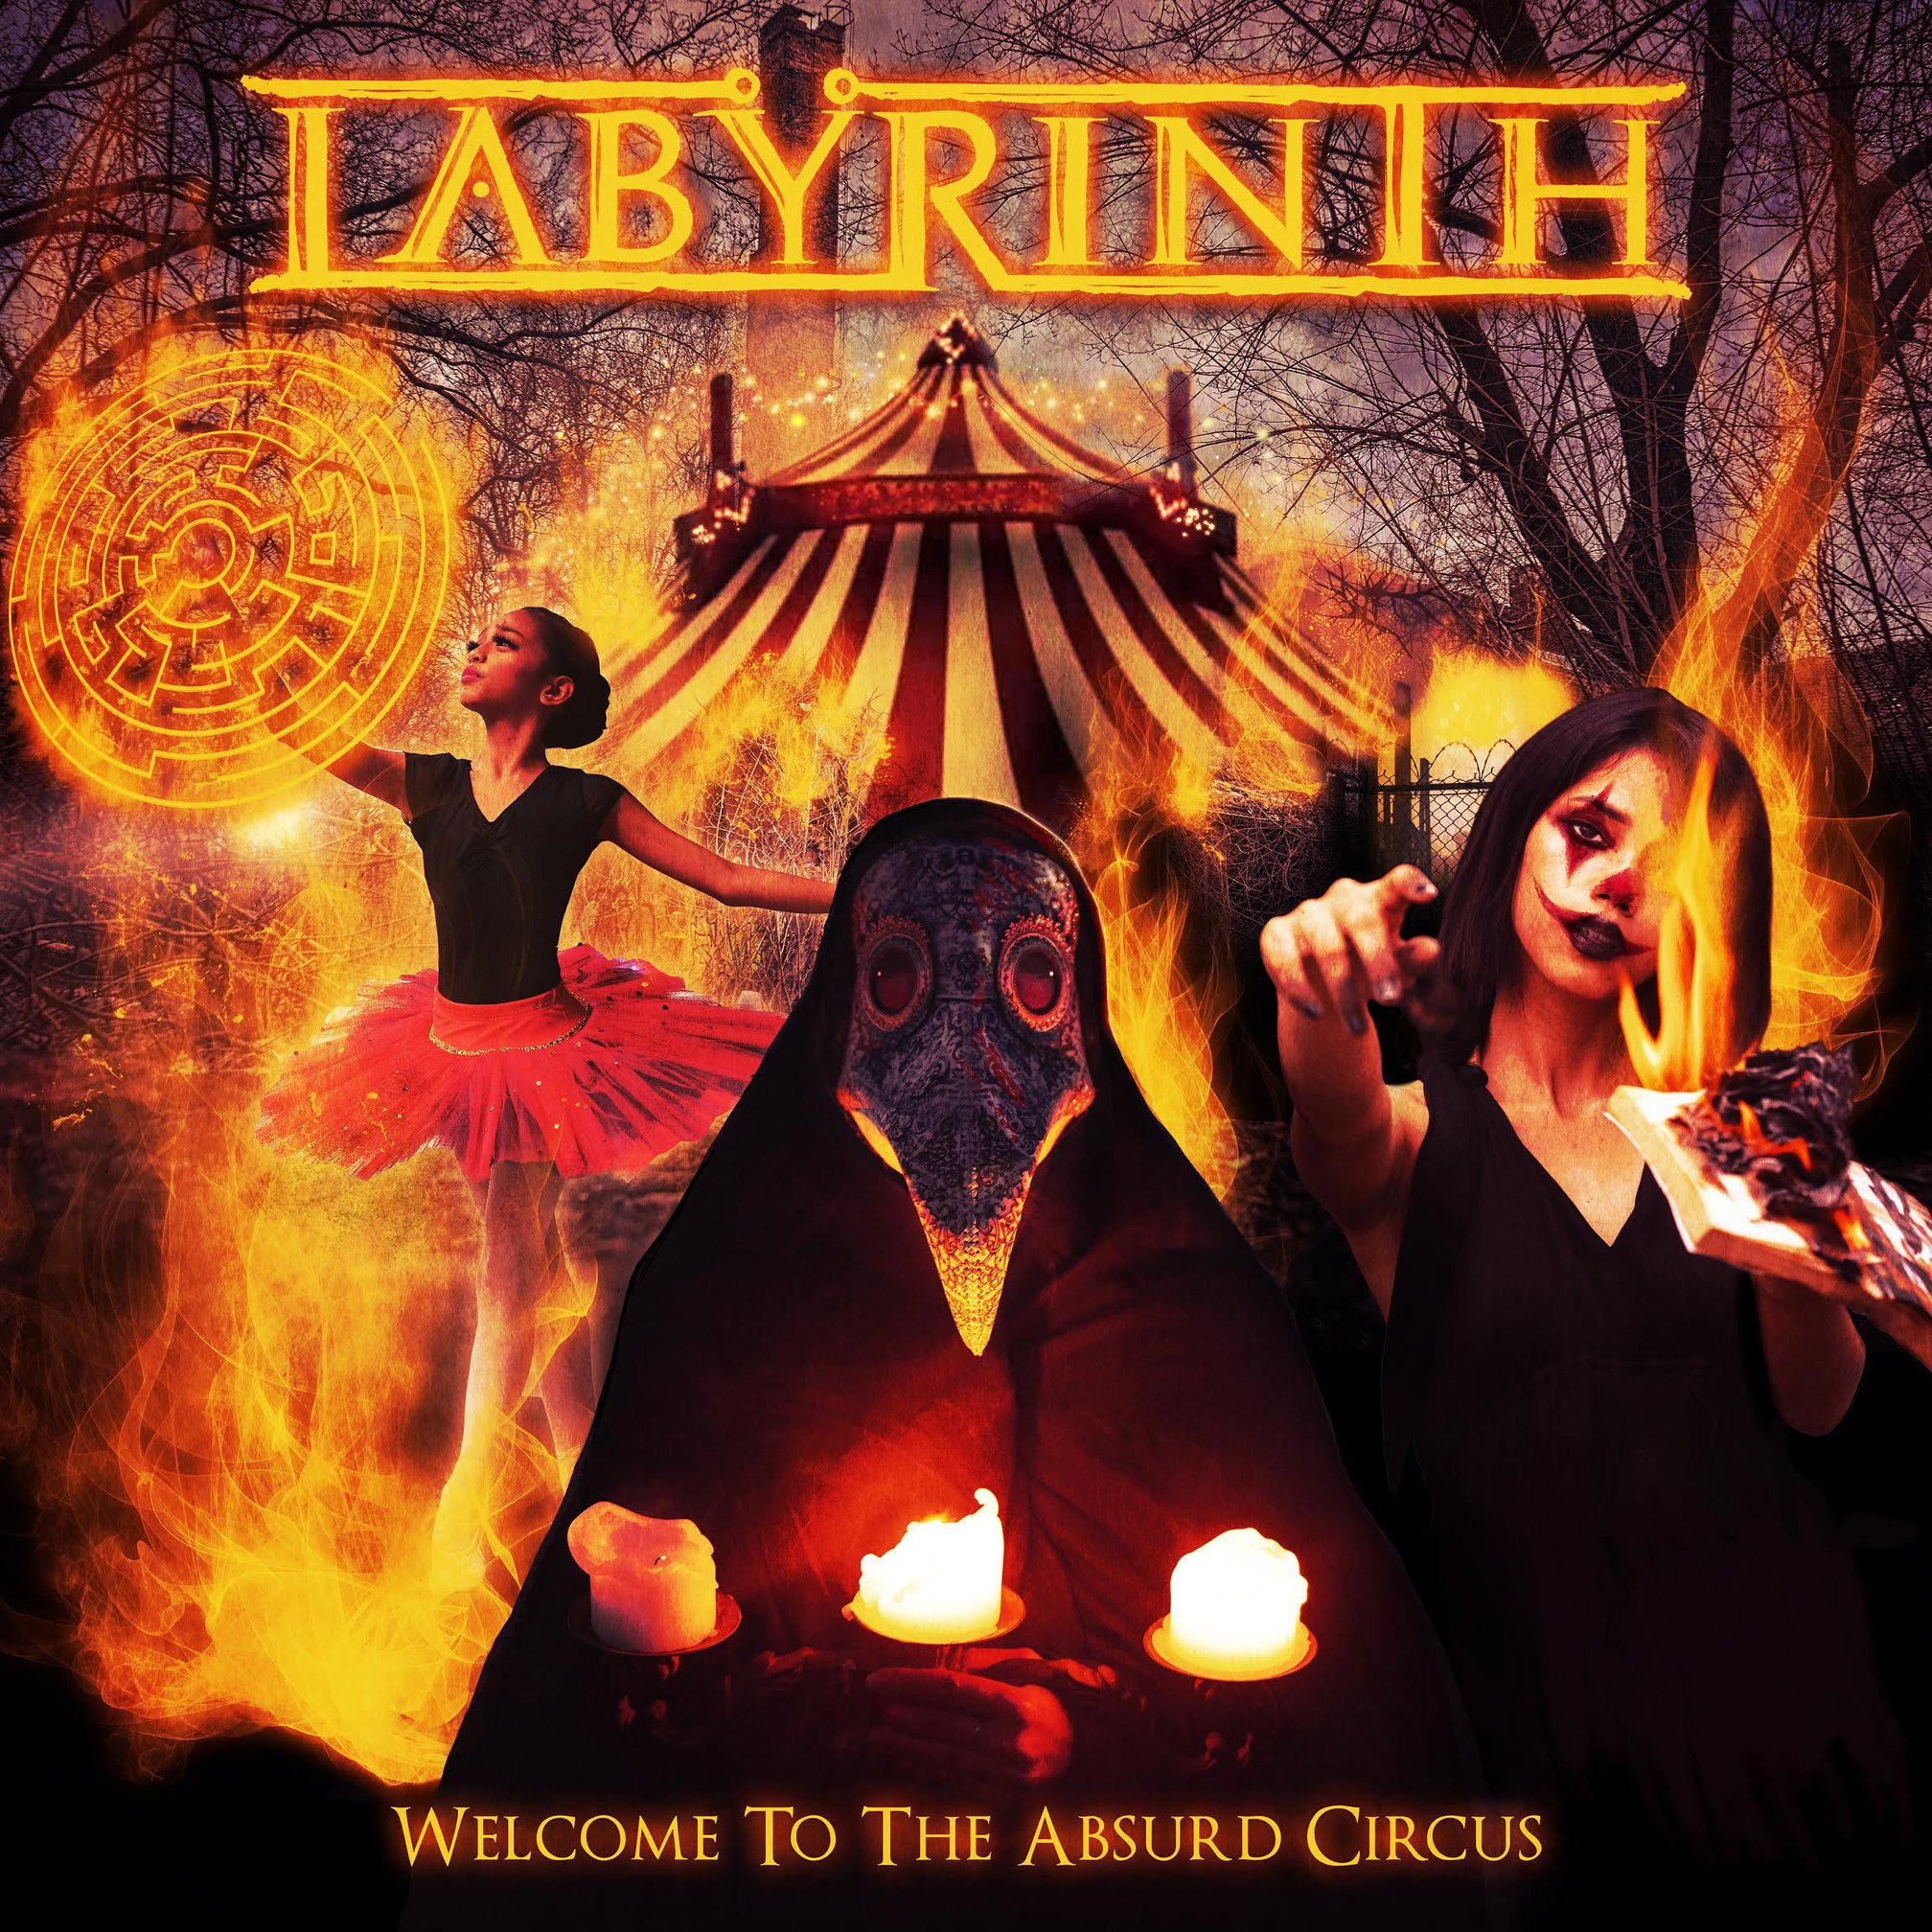 labyrinth - wecolme to the absurd circus